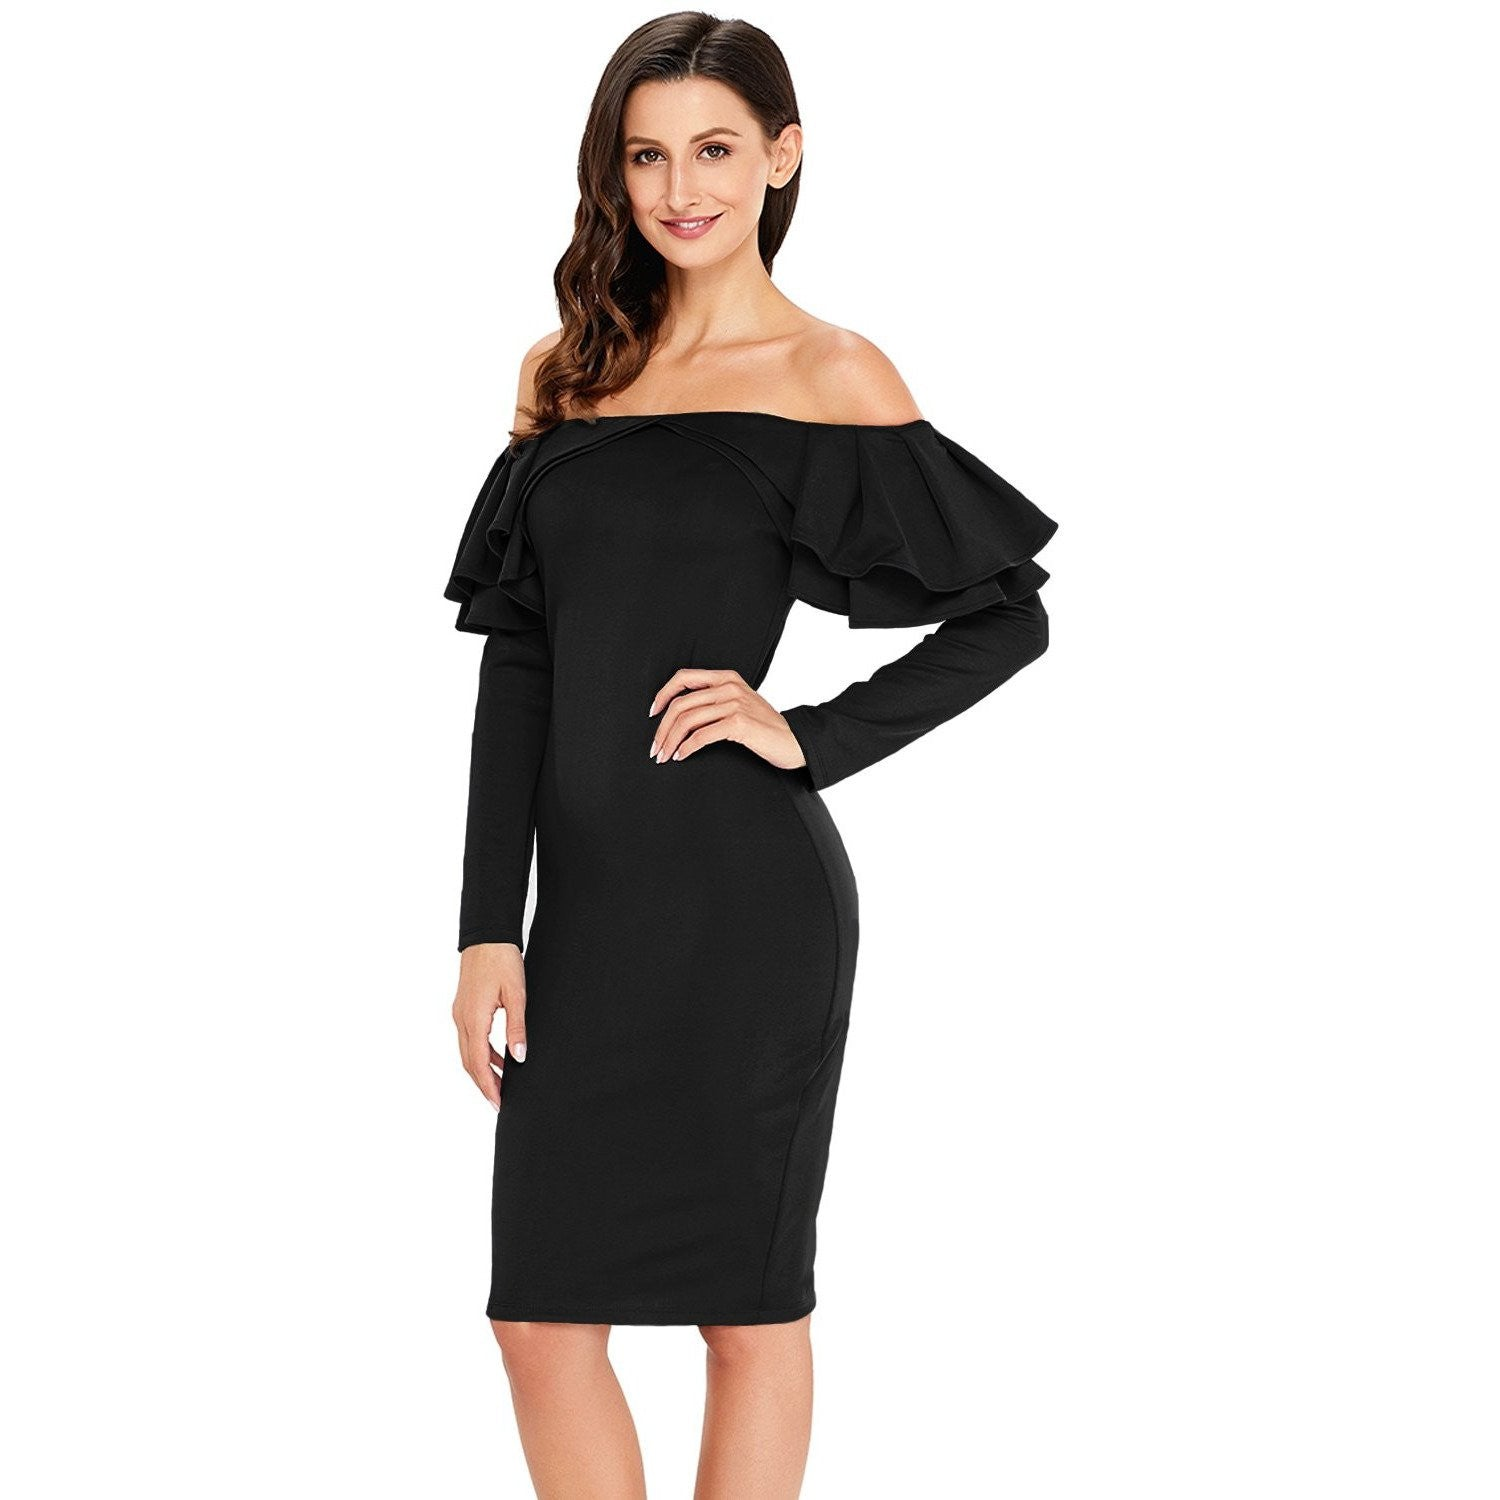 KELLIPS Black Ruffle Bodycon Dress - KELLIPS